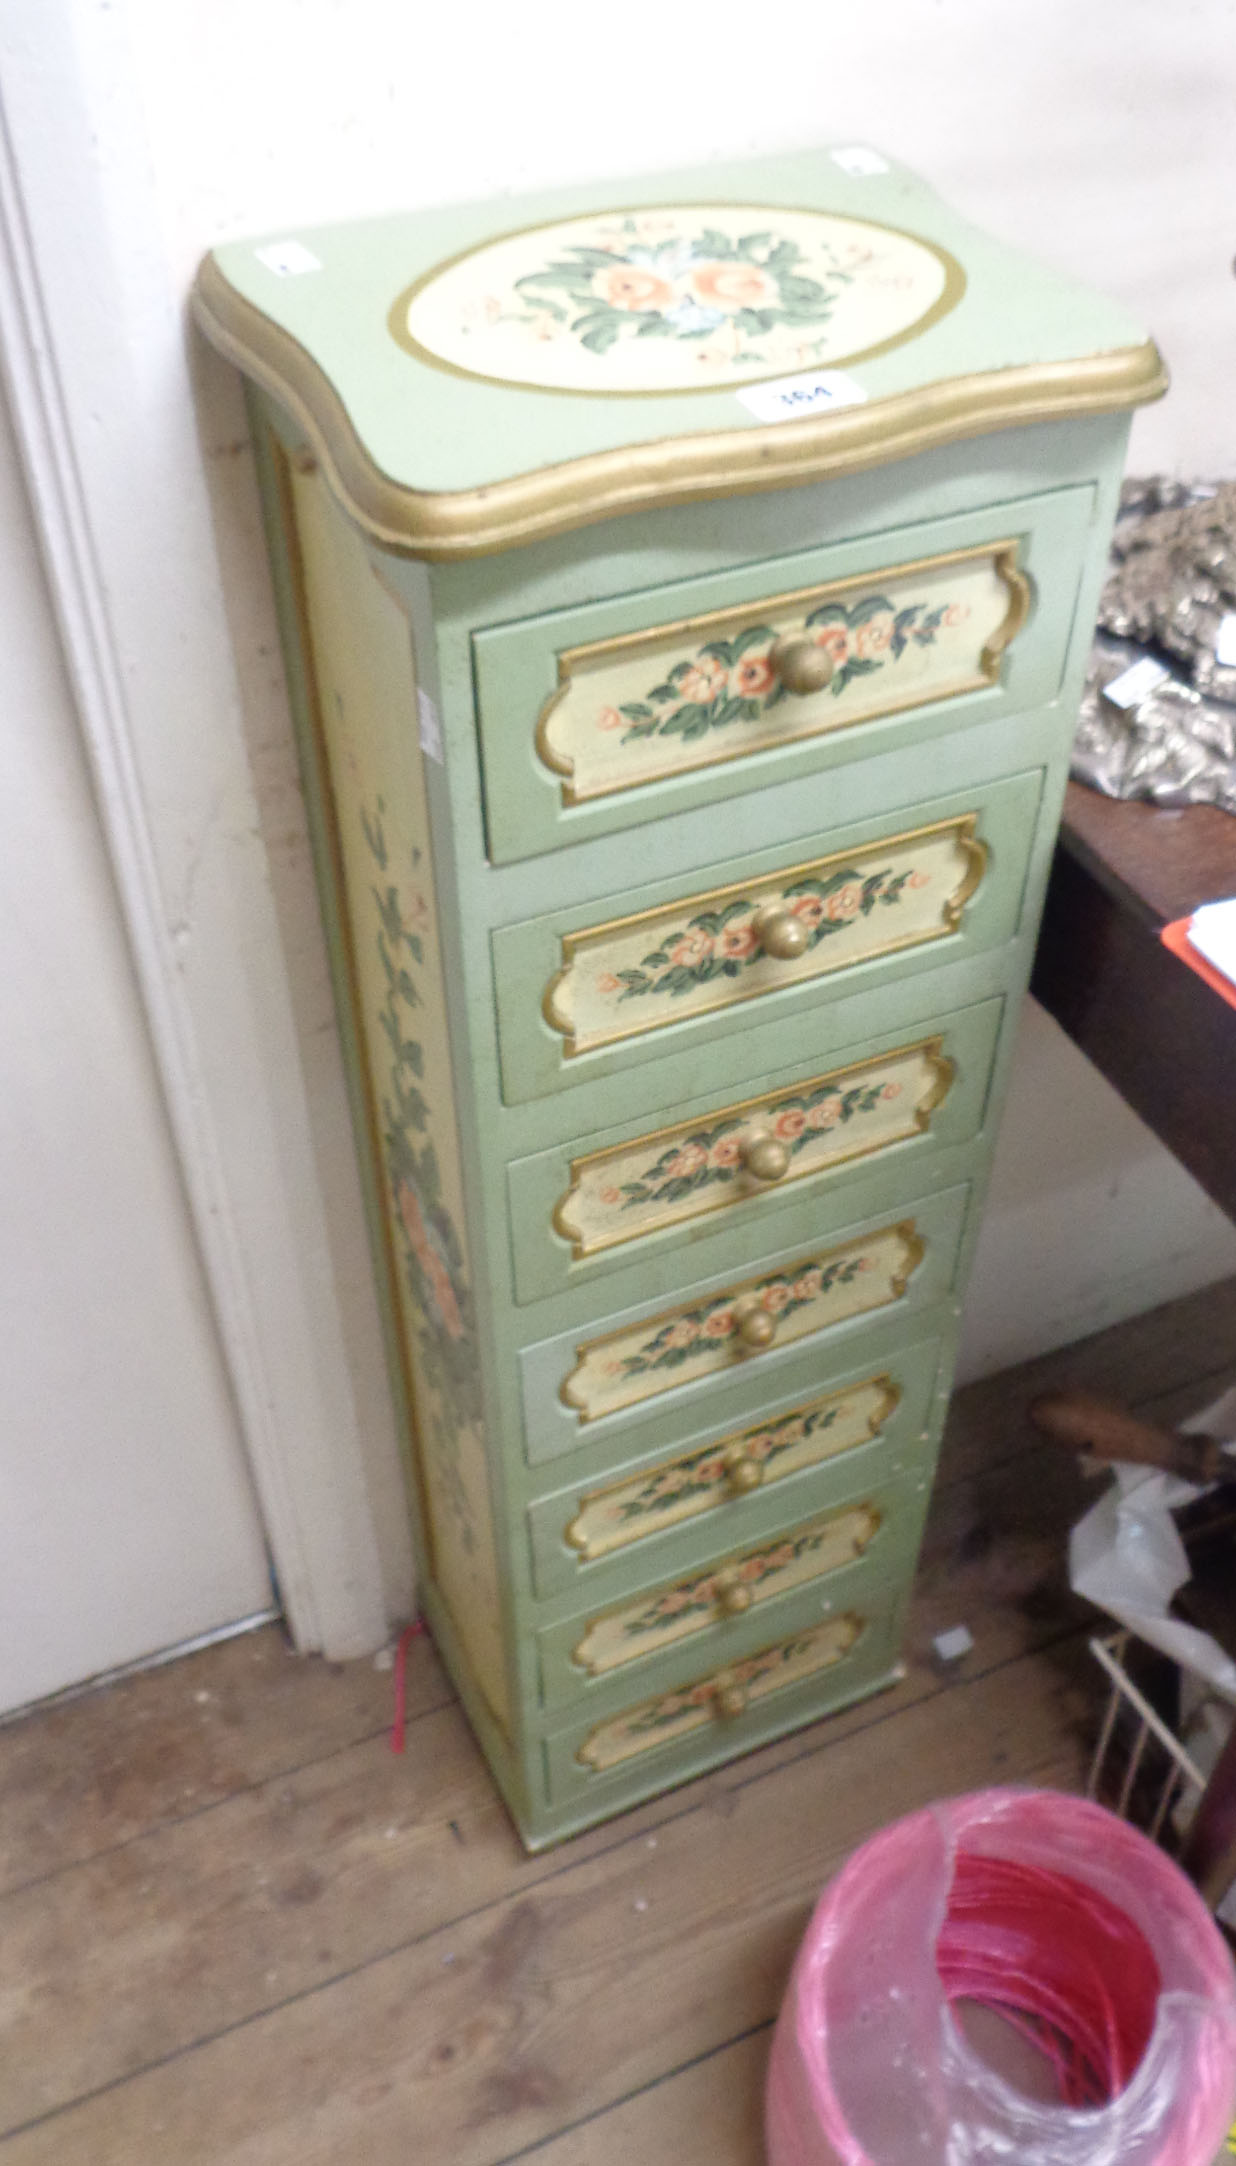 A 30cm wide modern decorative narrow chest with flight of seven drawers, with all round painted